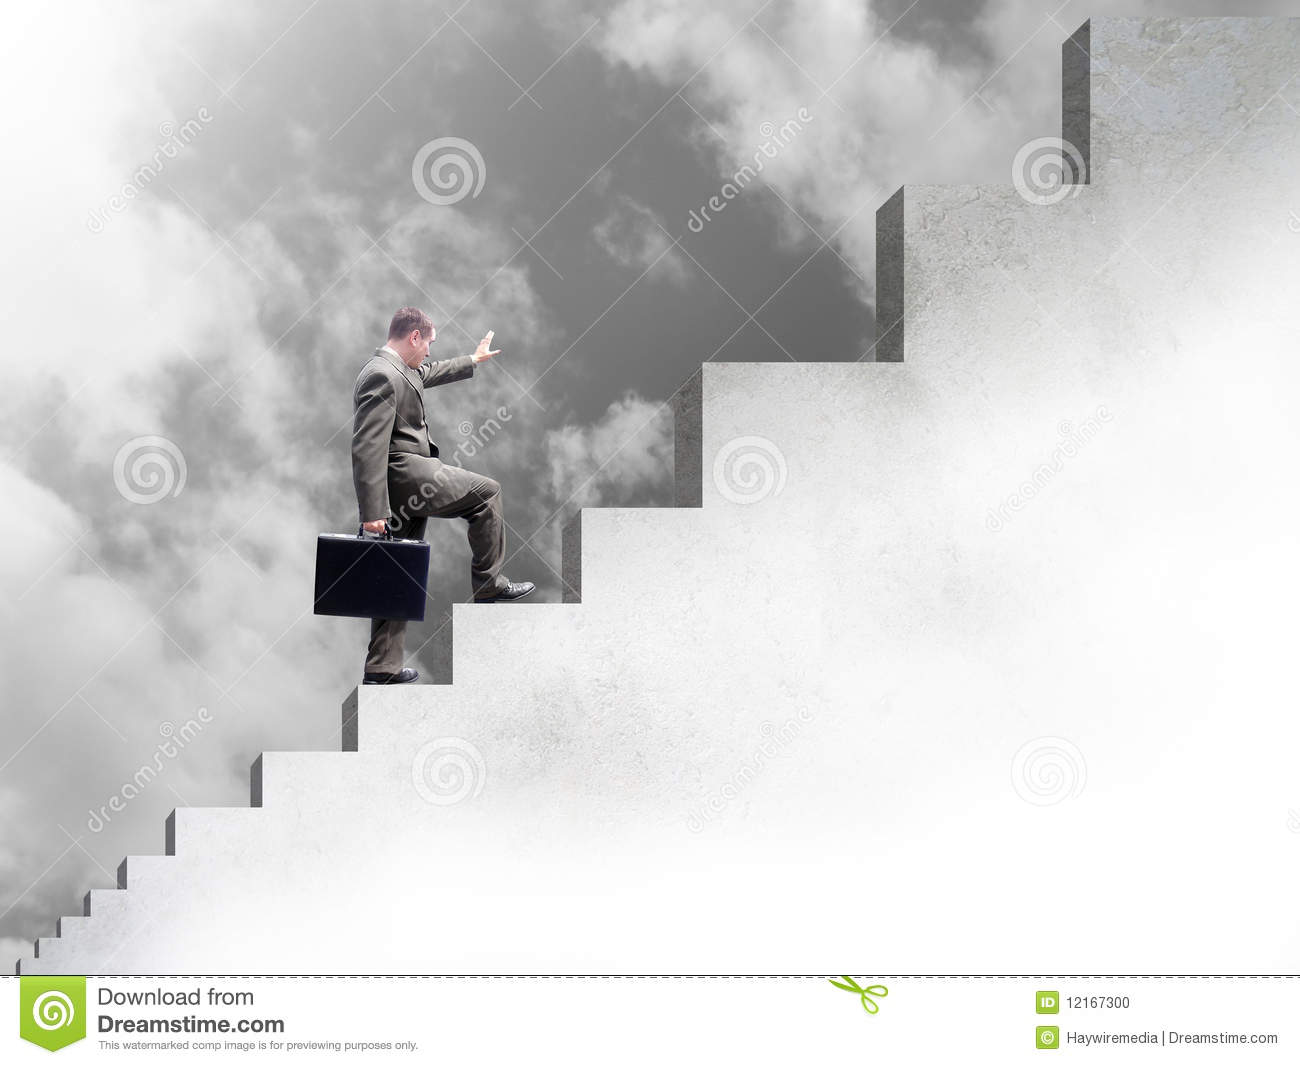 Business Man Climbing Up Stairs To Success Stock Photo - Image ... for Climbing Stairs To Success  67qdu